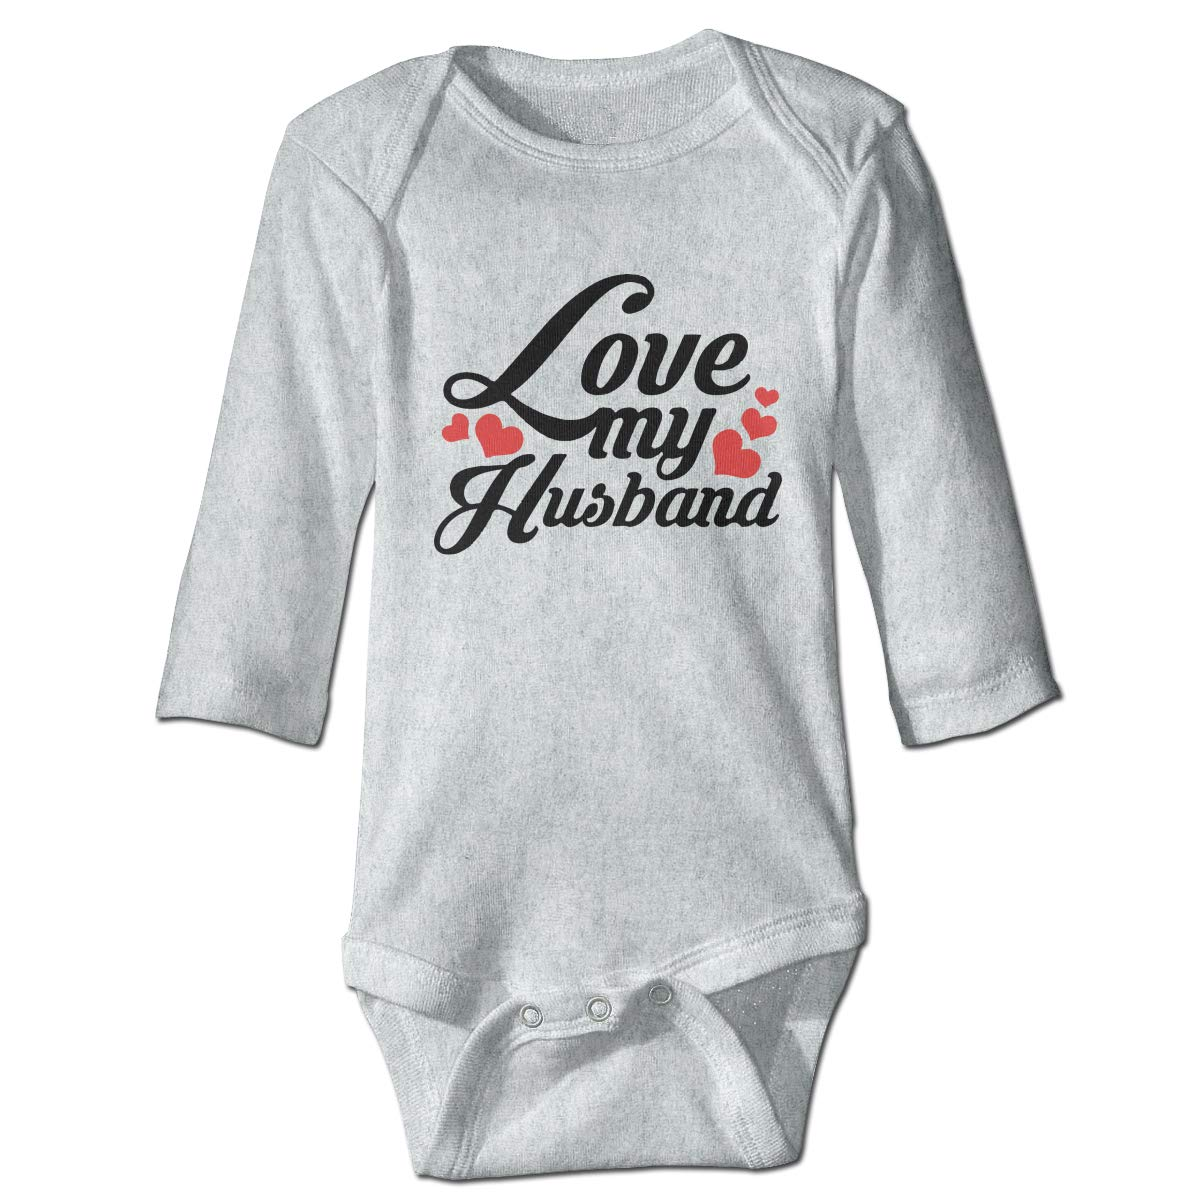 Infant Babys Long Sleeve Romper Bodysuit I Love My Husband Unisex Button Playsuit Outfit Clothes